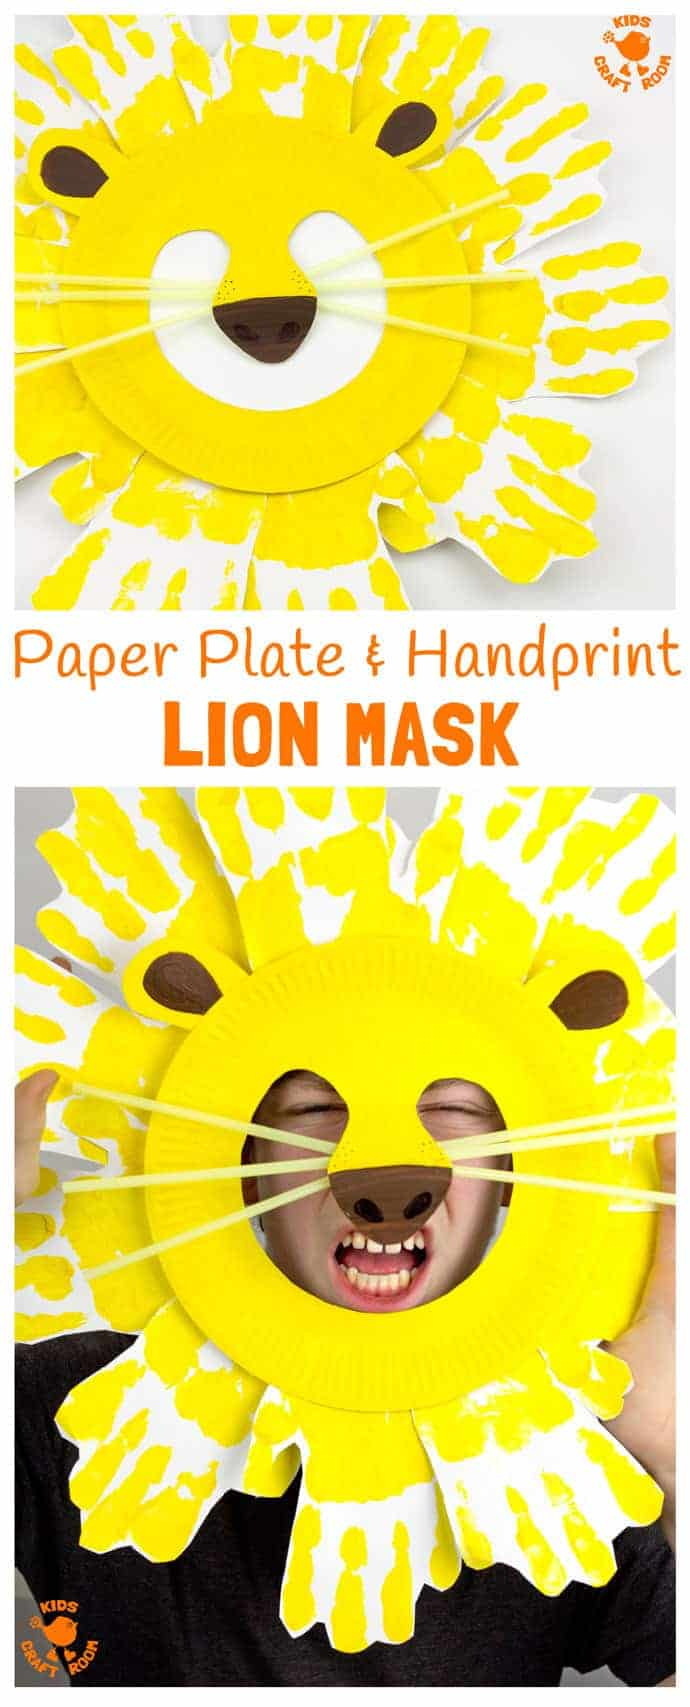 Kids will love adorable Handprint and Paper Plate Lion Masks. These easy paper plate craft animal masks are fun for the dress up box and a great way to inspire dramatic play. #lion #mask #paperplatecrafts #handprintcrafts #lioncrafts #maskcrafts #animalcrafts #lions #masks #homemademasks #kidscrafts #craftforkids #kidscraftroom #junglecrafts #costumes #dramaticplay